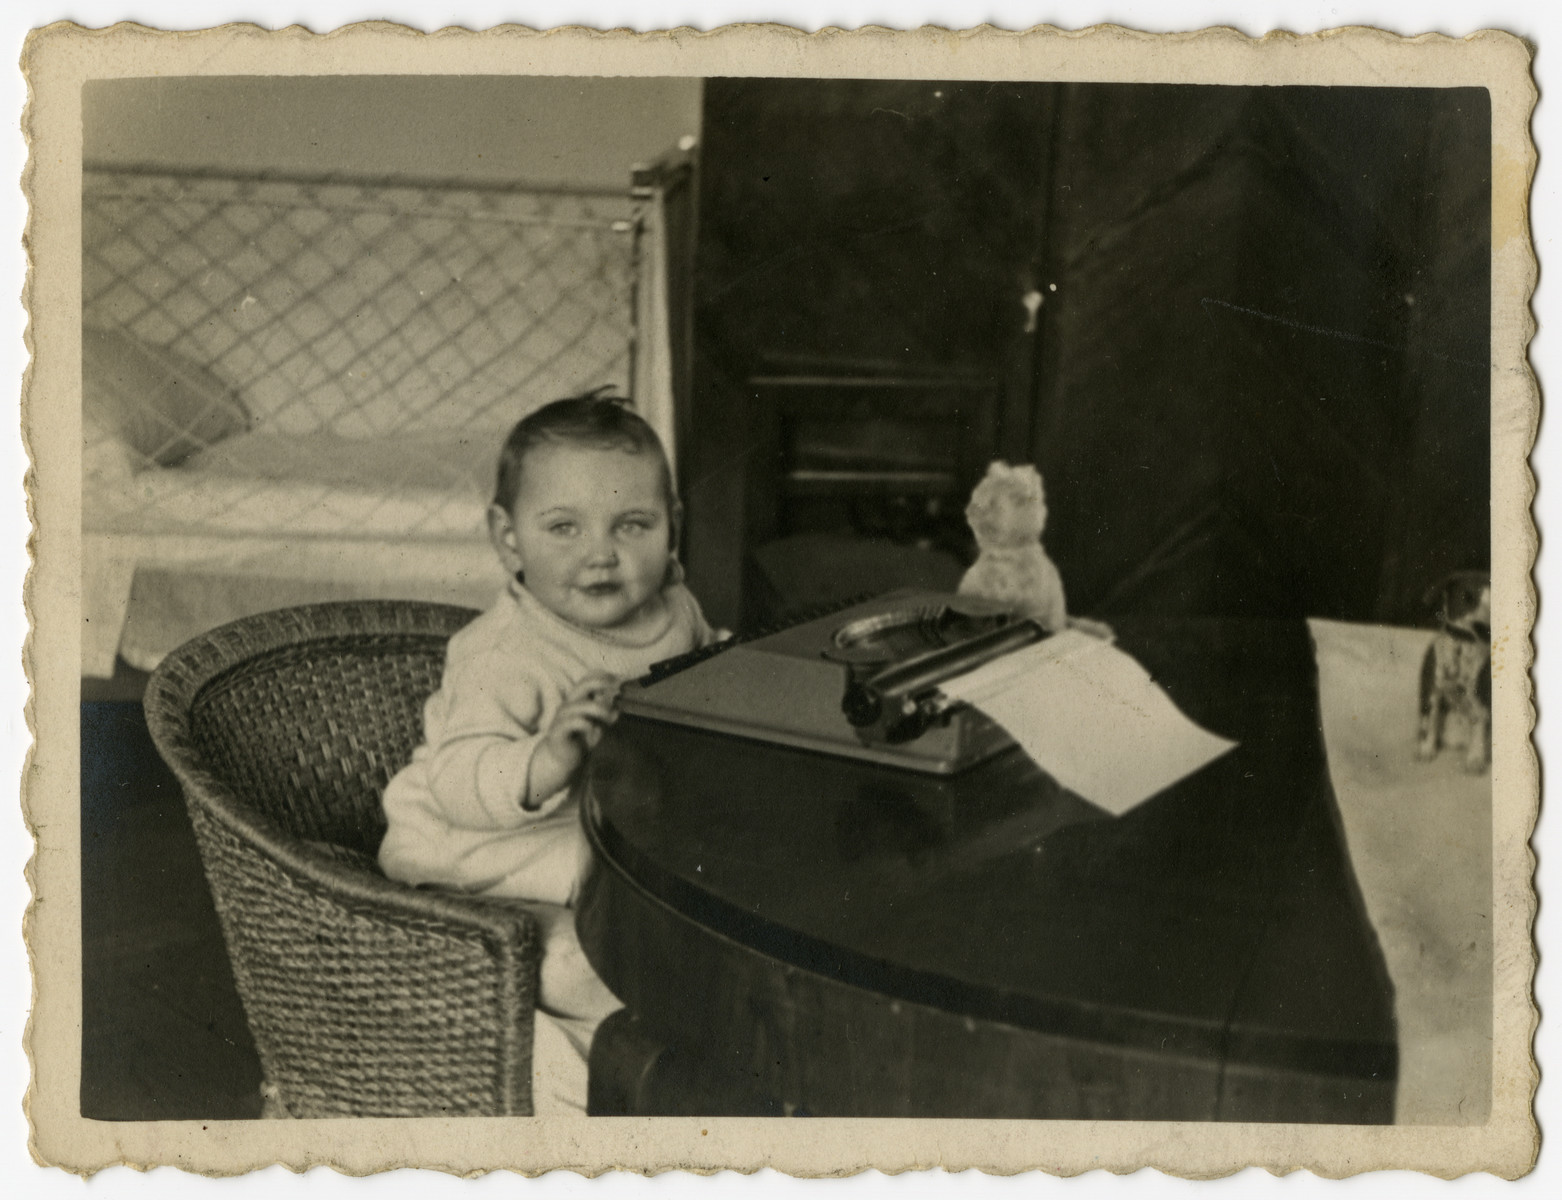 One-year-old Helen Sznajderman sits by a typewriter.